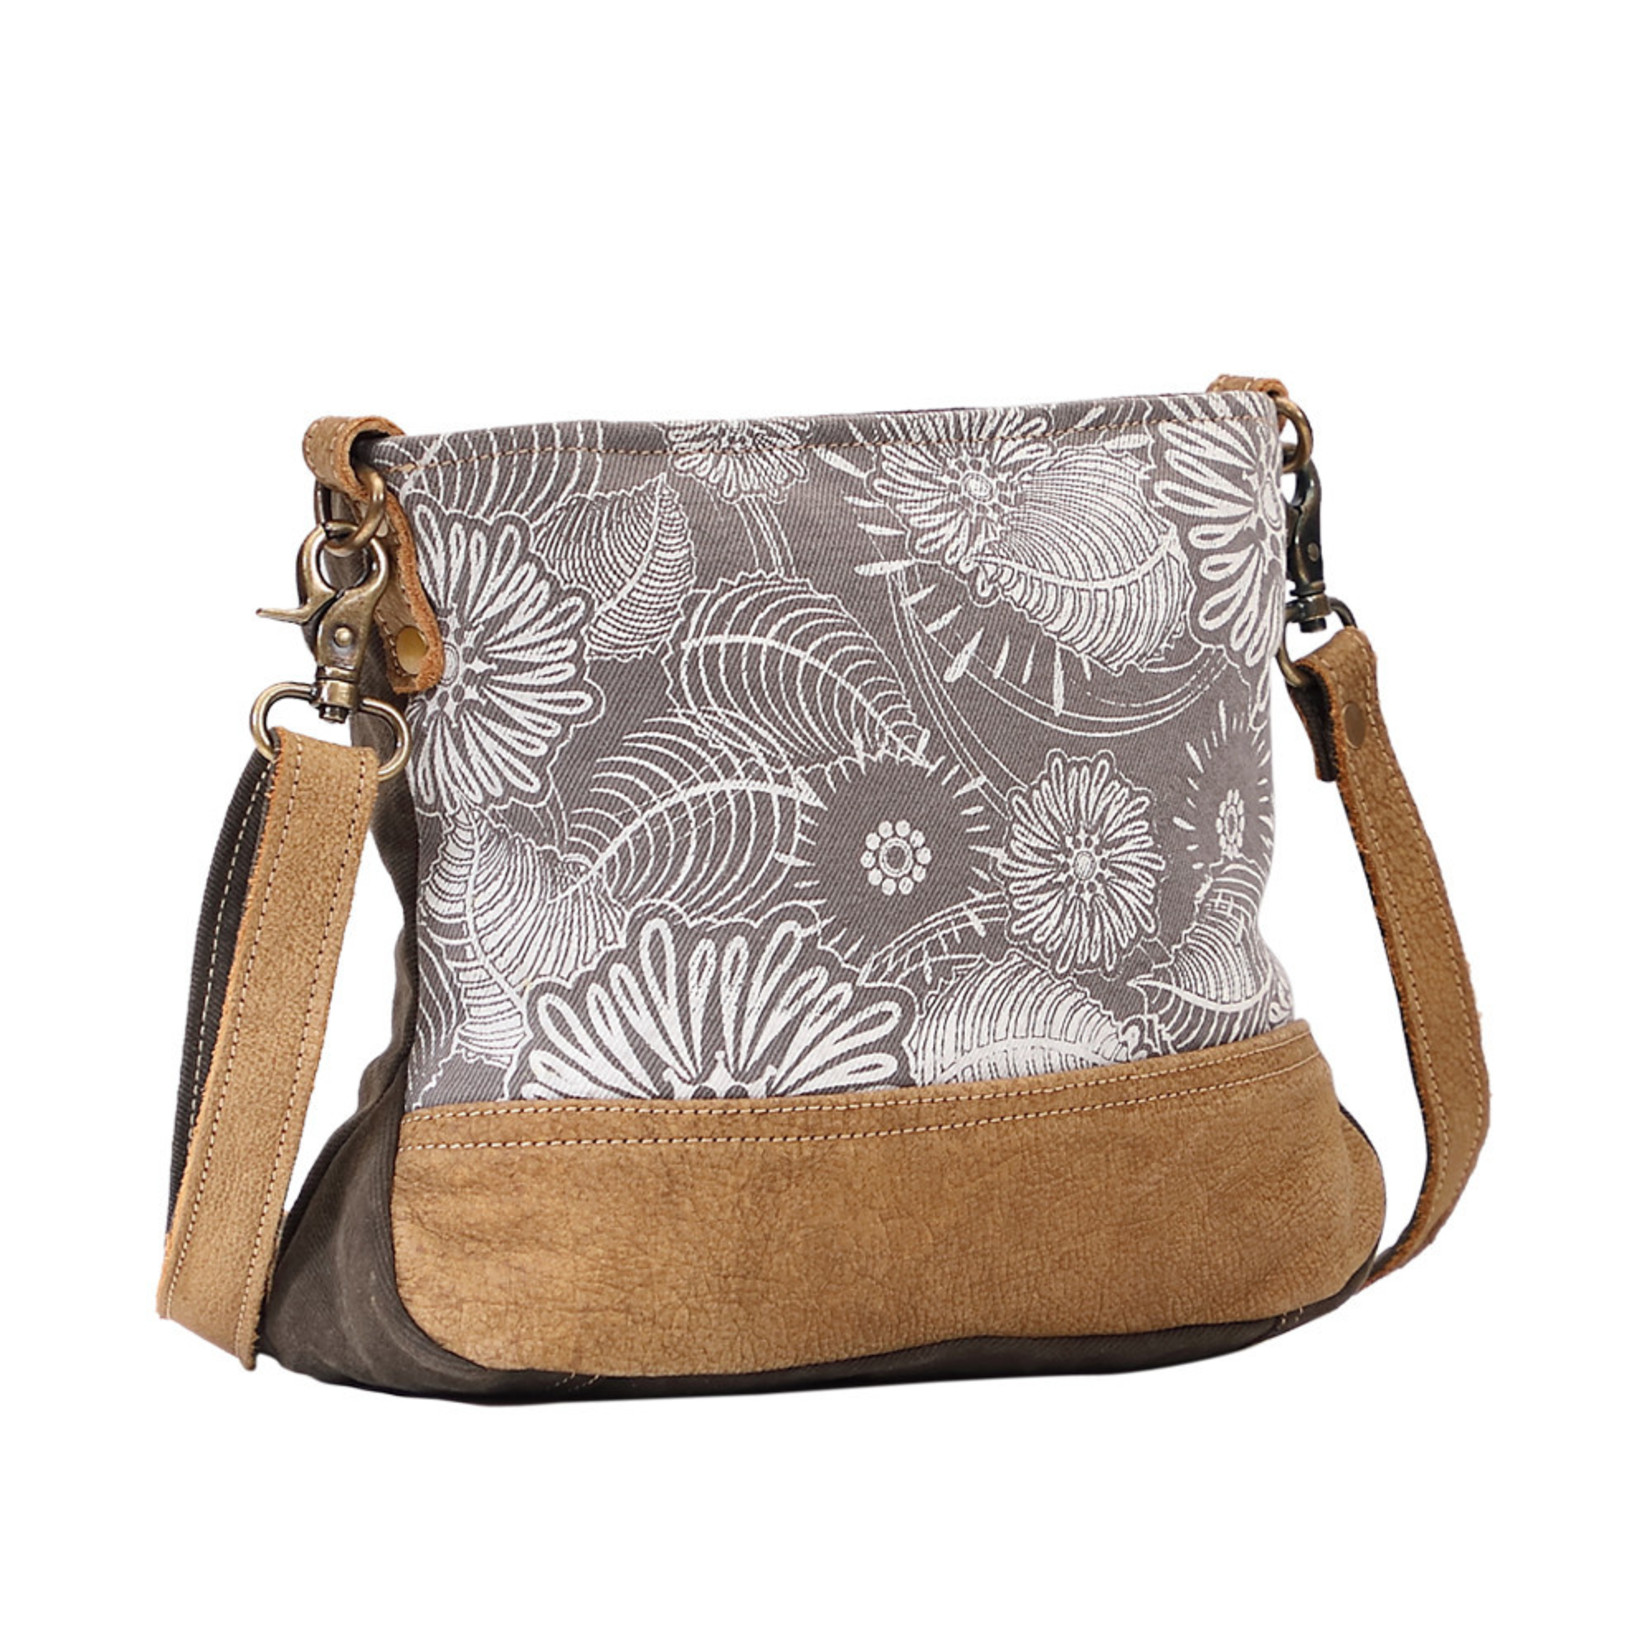 Myra Bags S-1469 Saplings Shoulder Bag